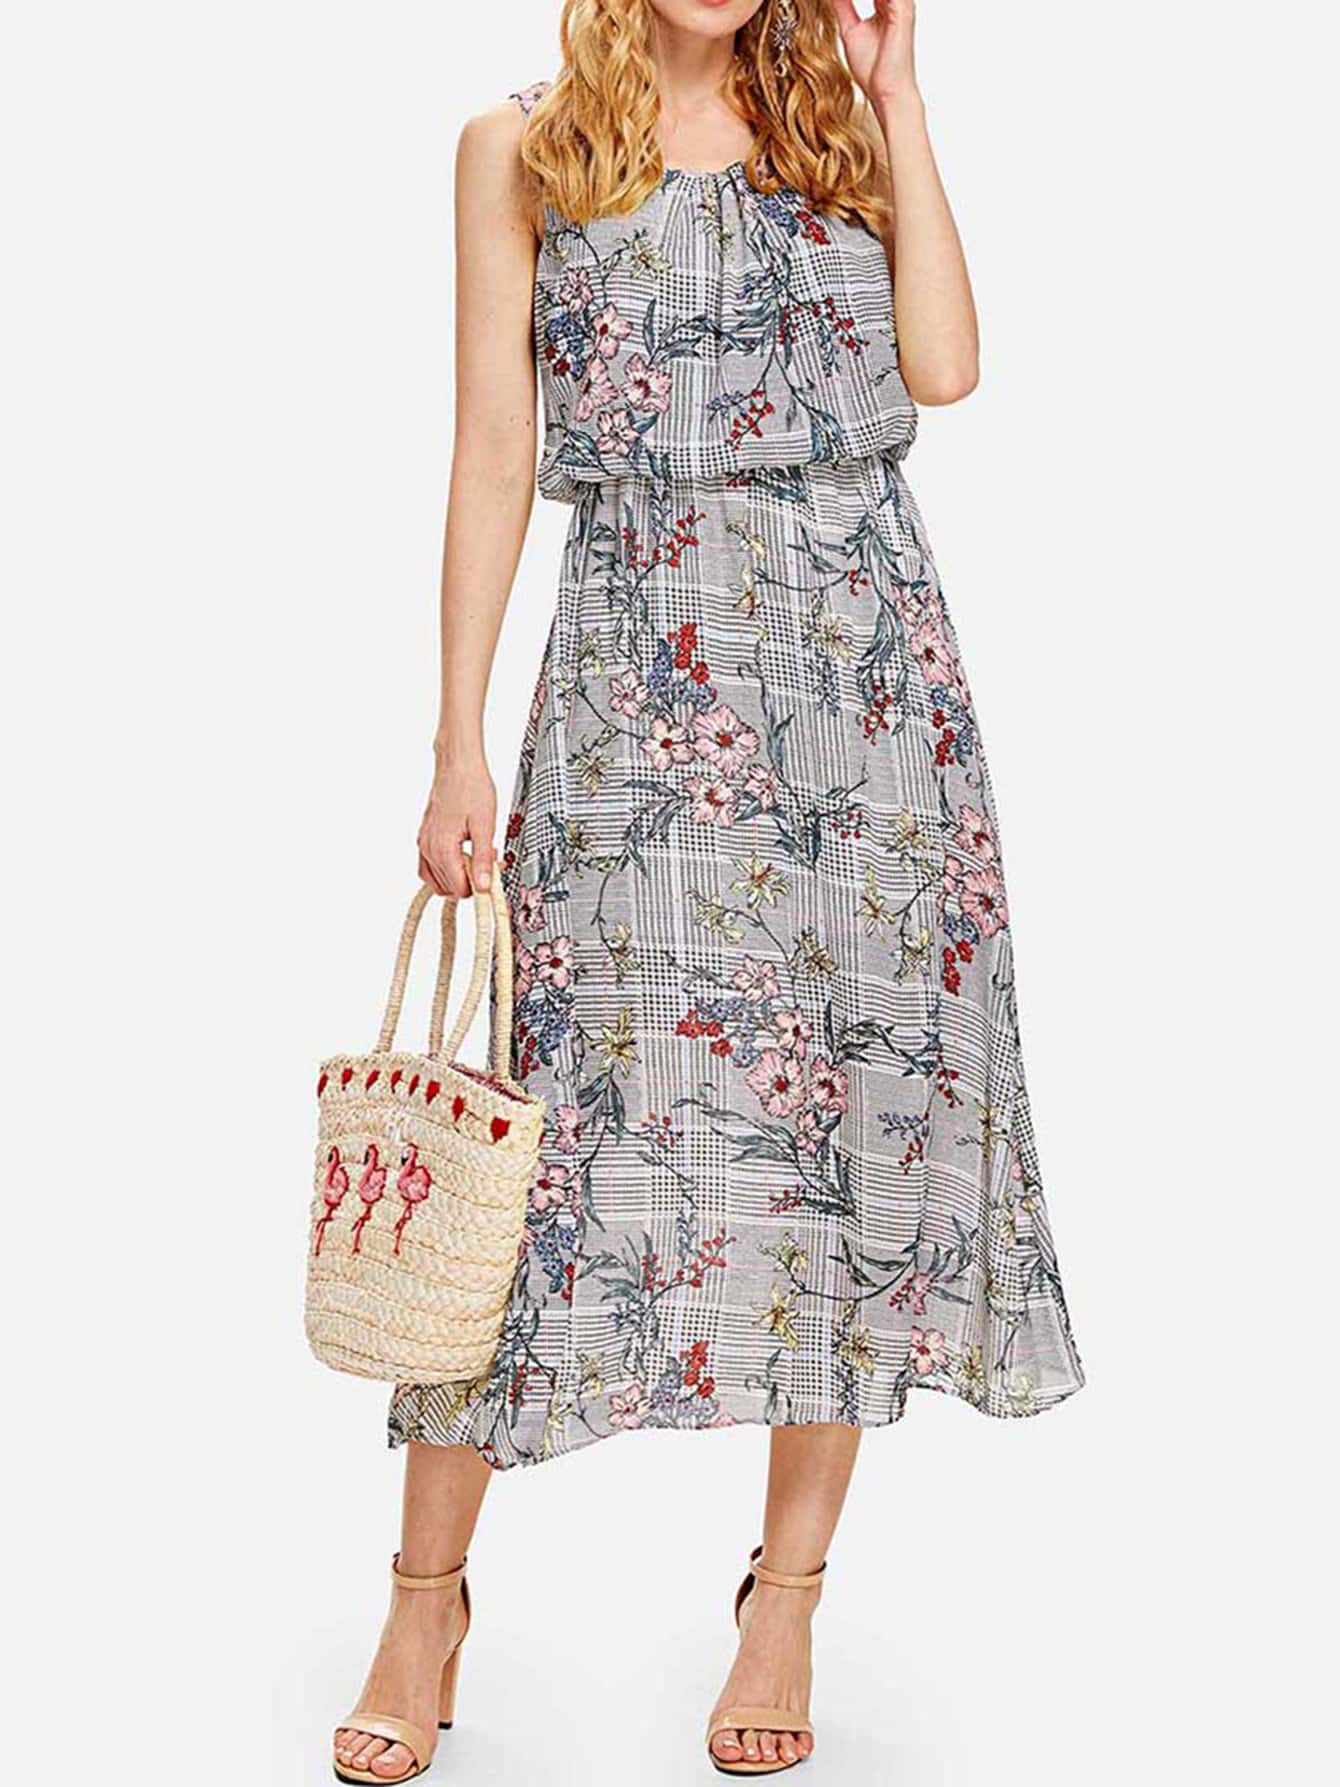 Floral Print Plaid Dress zip back fit and flared plaid dress